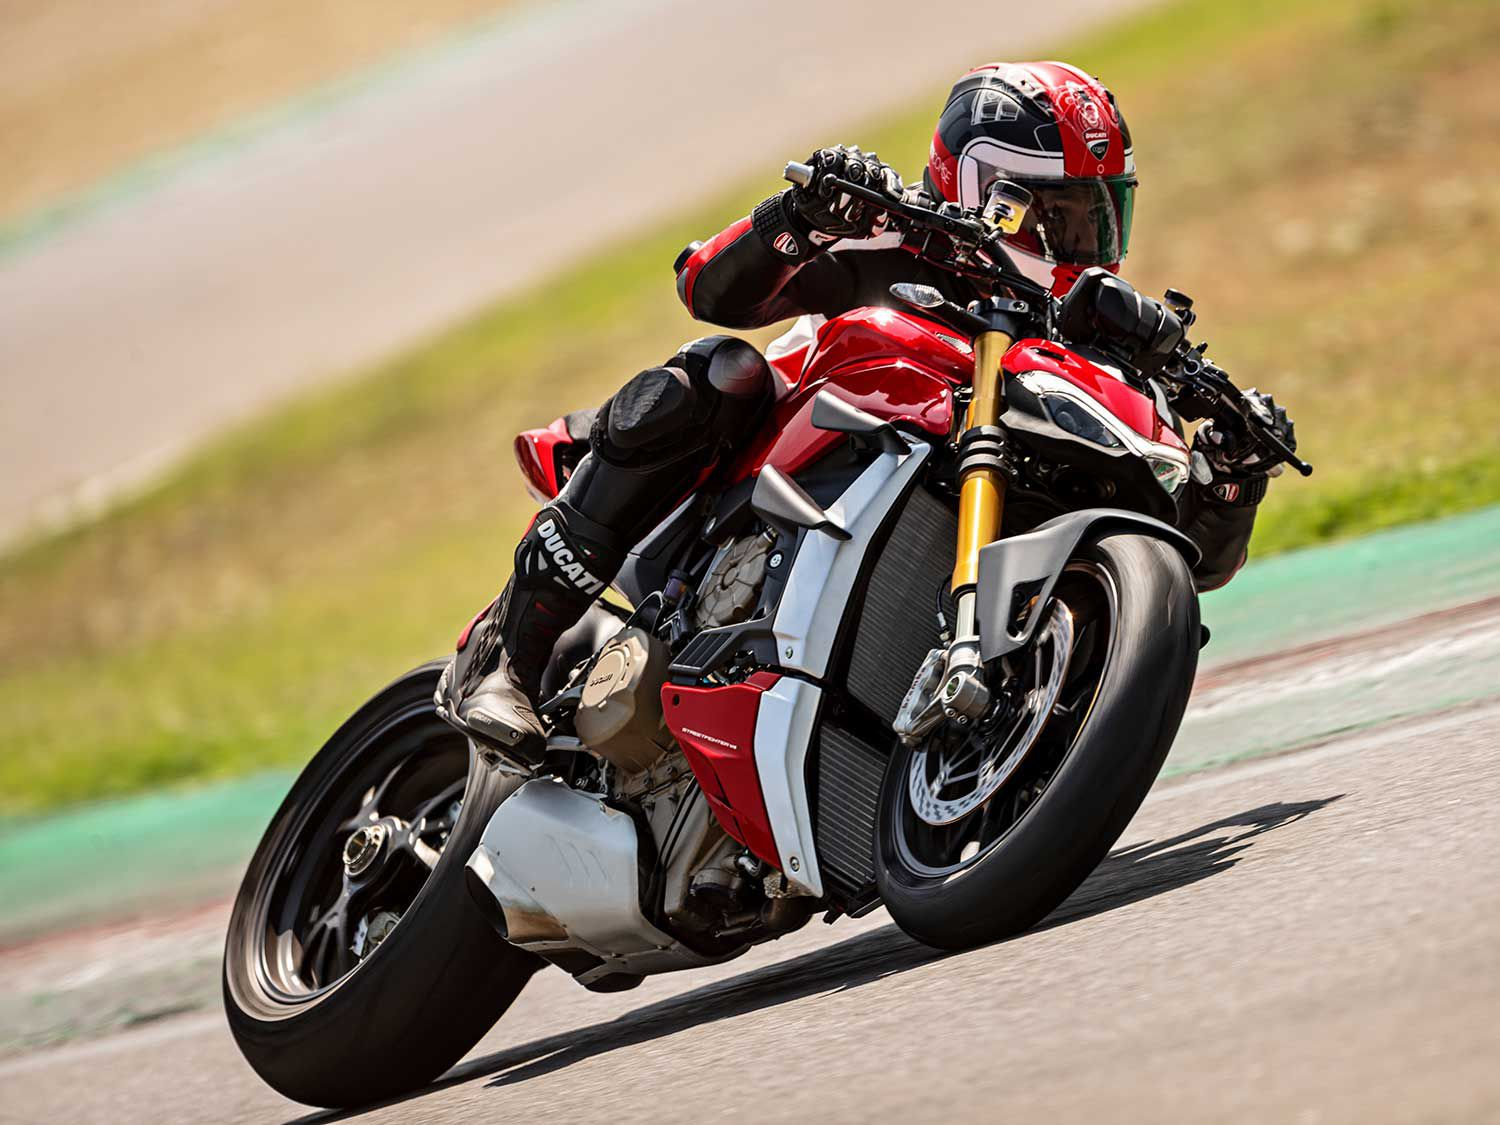 The 2020 Streetfighter V4 incorporates the Ducati Quick Shift (DQS) up/down EVO 2 system to speed up gear shifts.